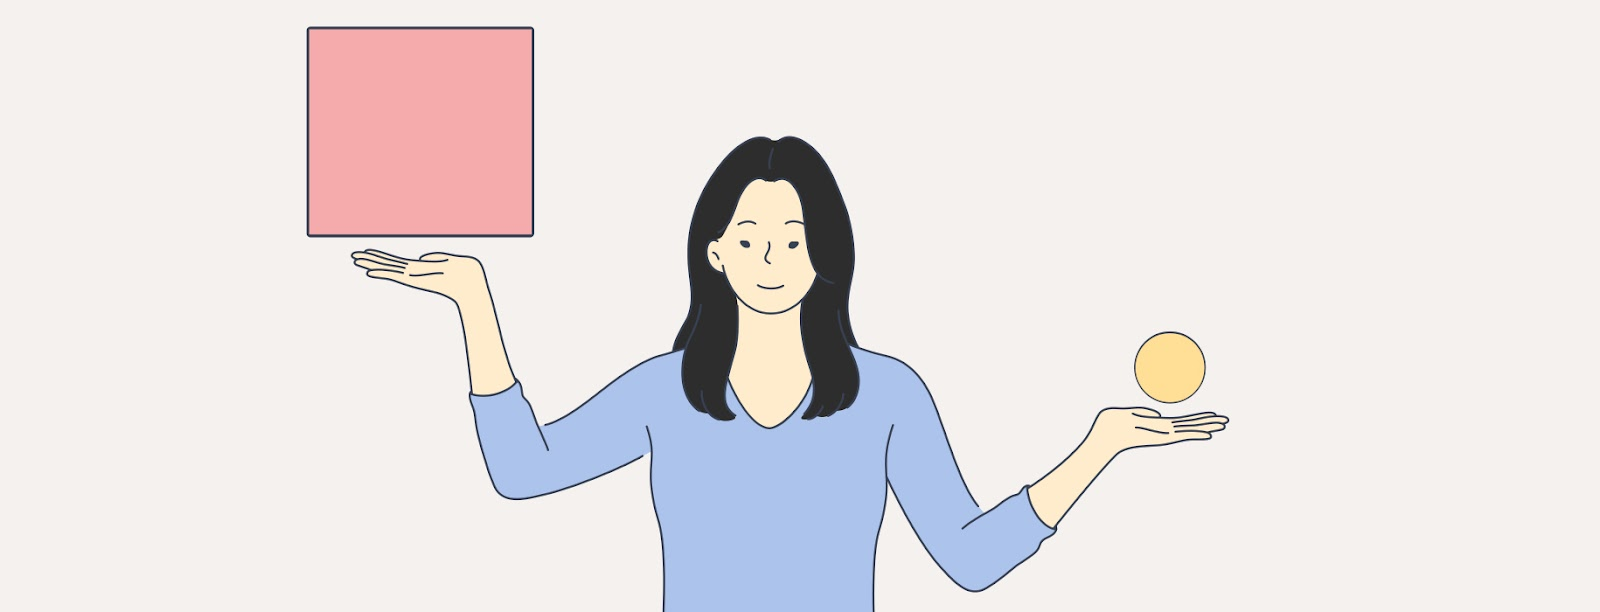 Illustration of woman balancing shapes in the air